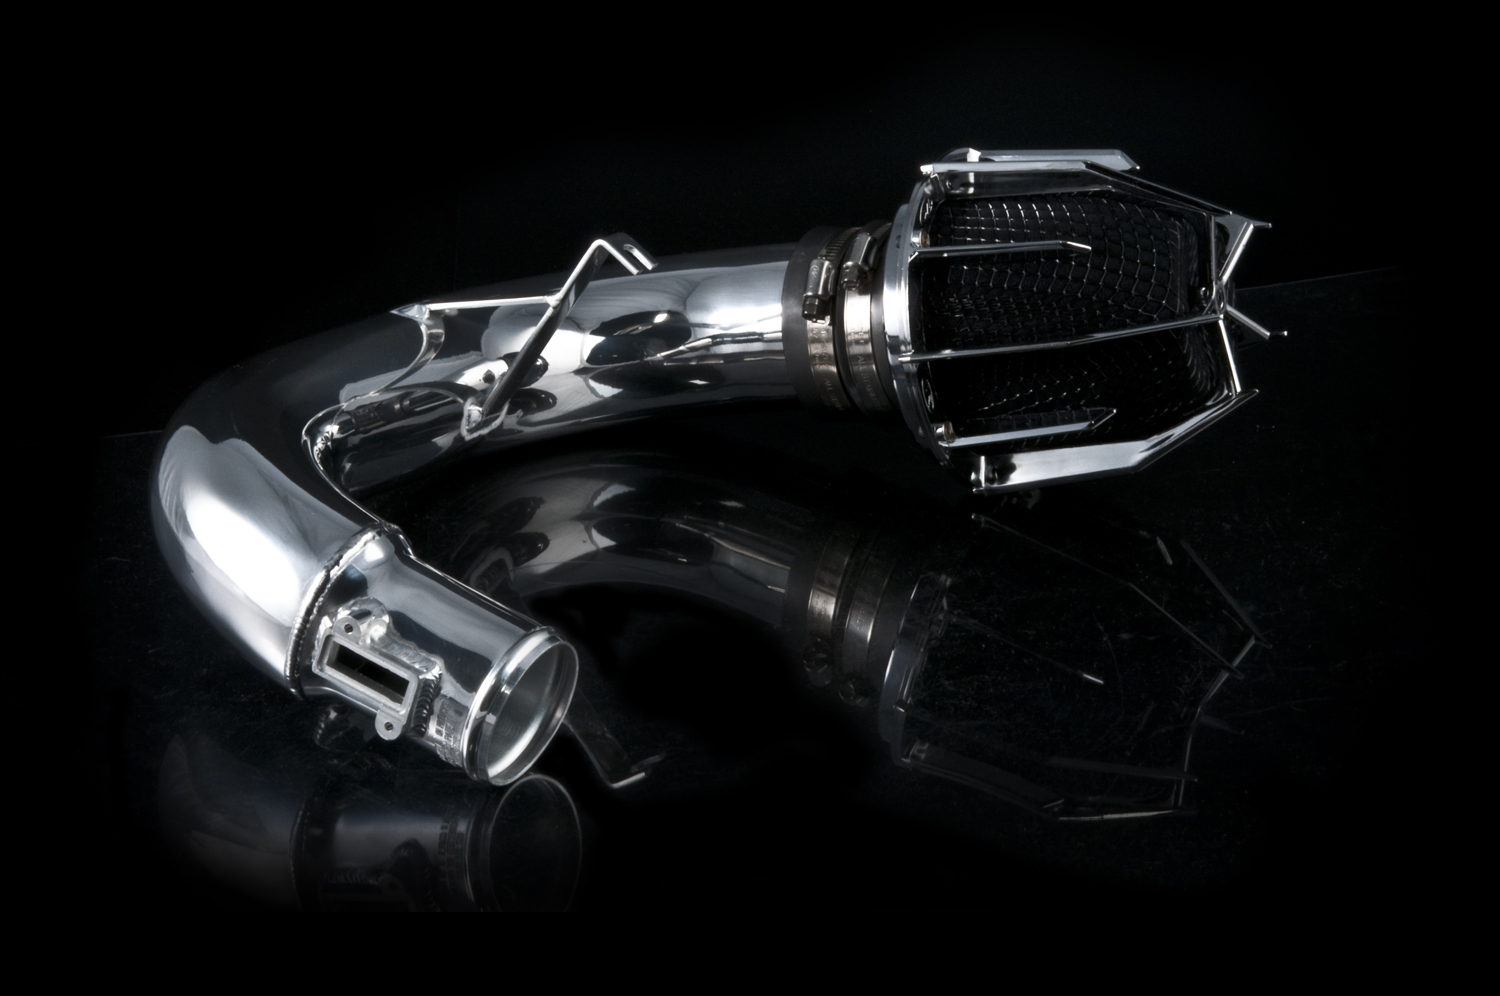 Chevrolet Hhr 2006-2007 Weapon-R Dragon Air Intake